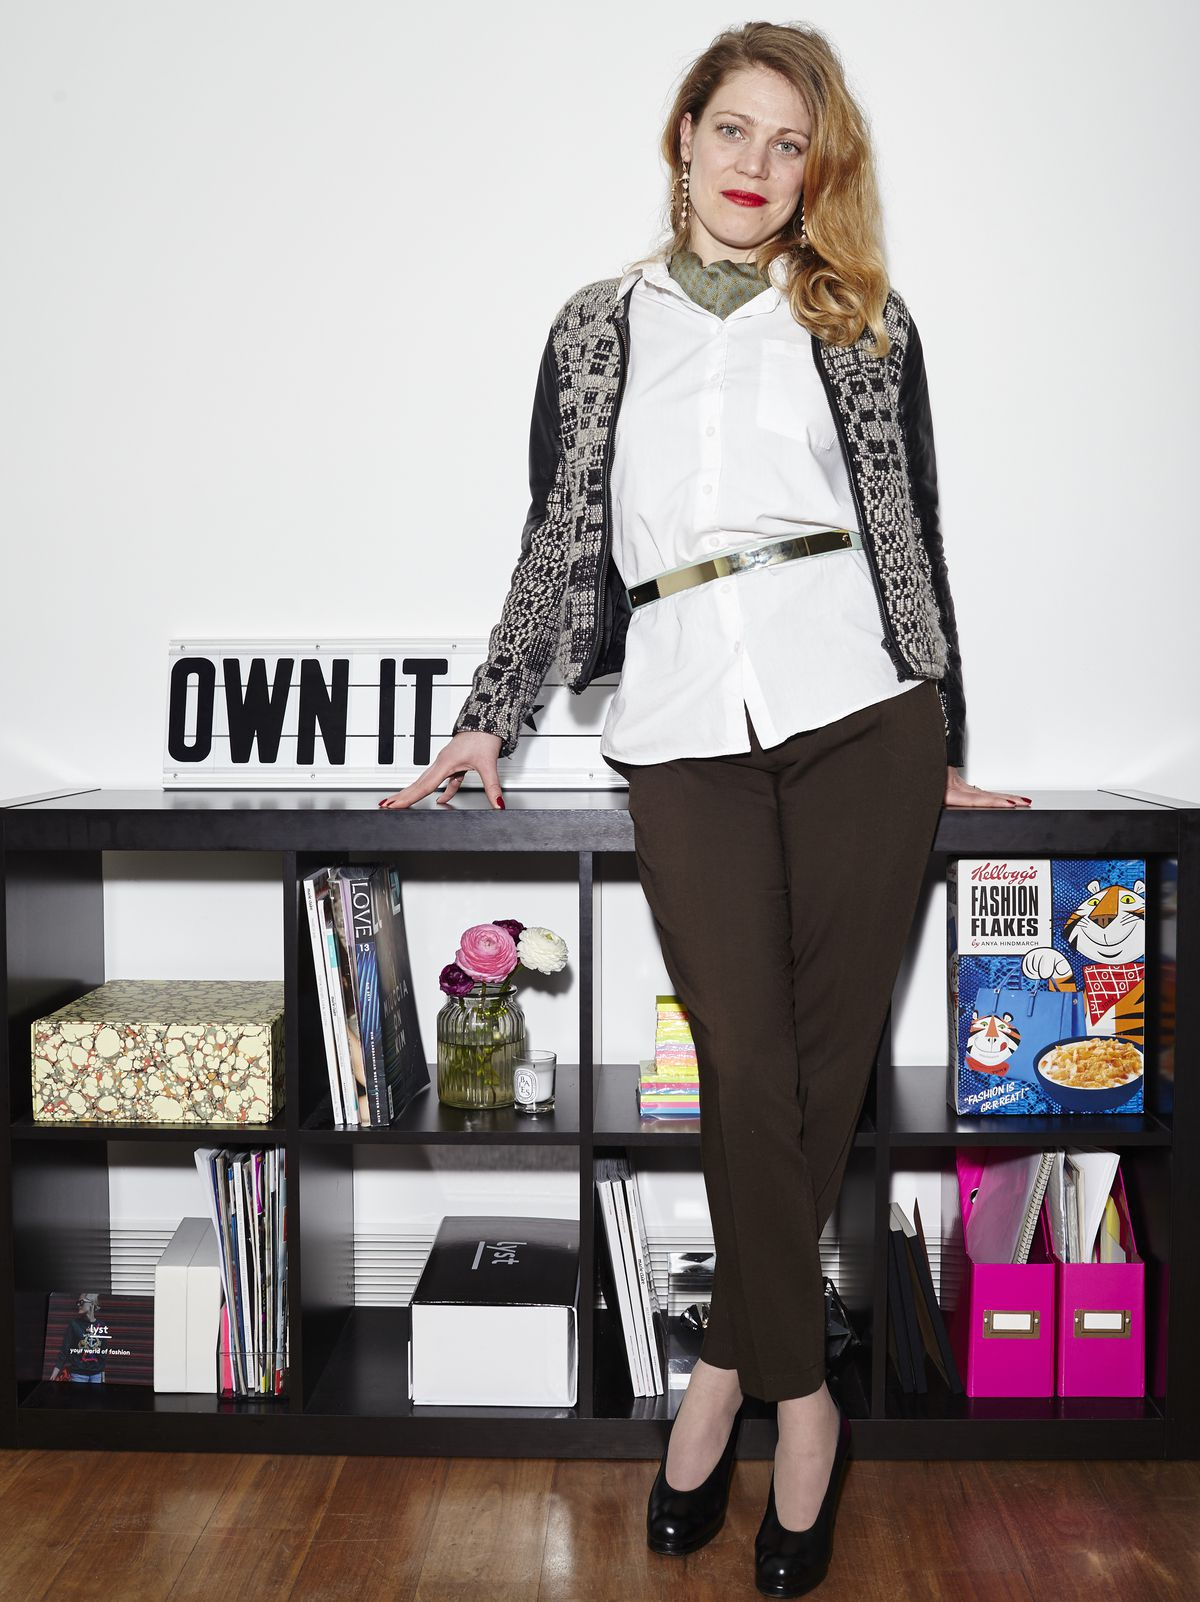 b6155f12d61c What the Team at Lyst's London Offices Wears to Work - Racked